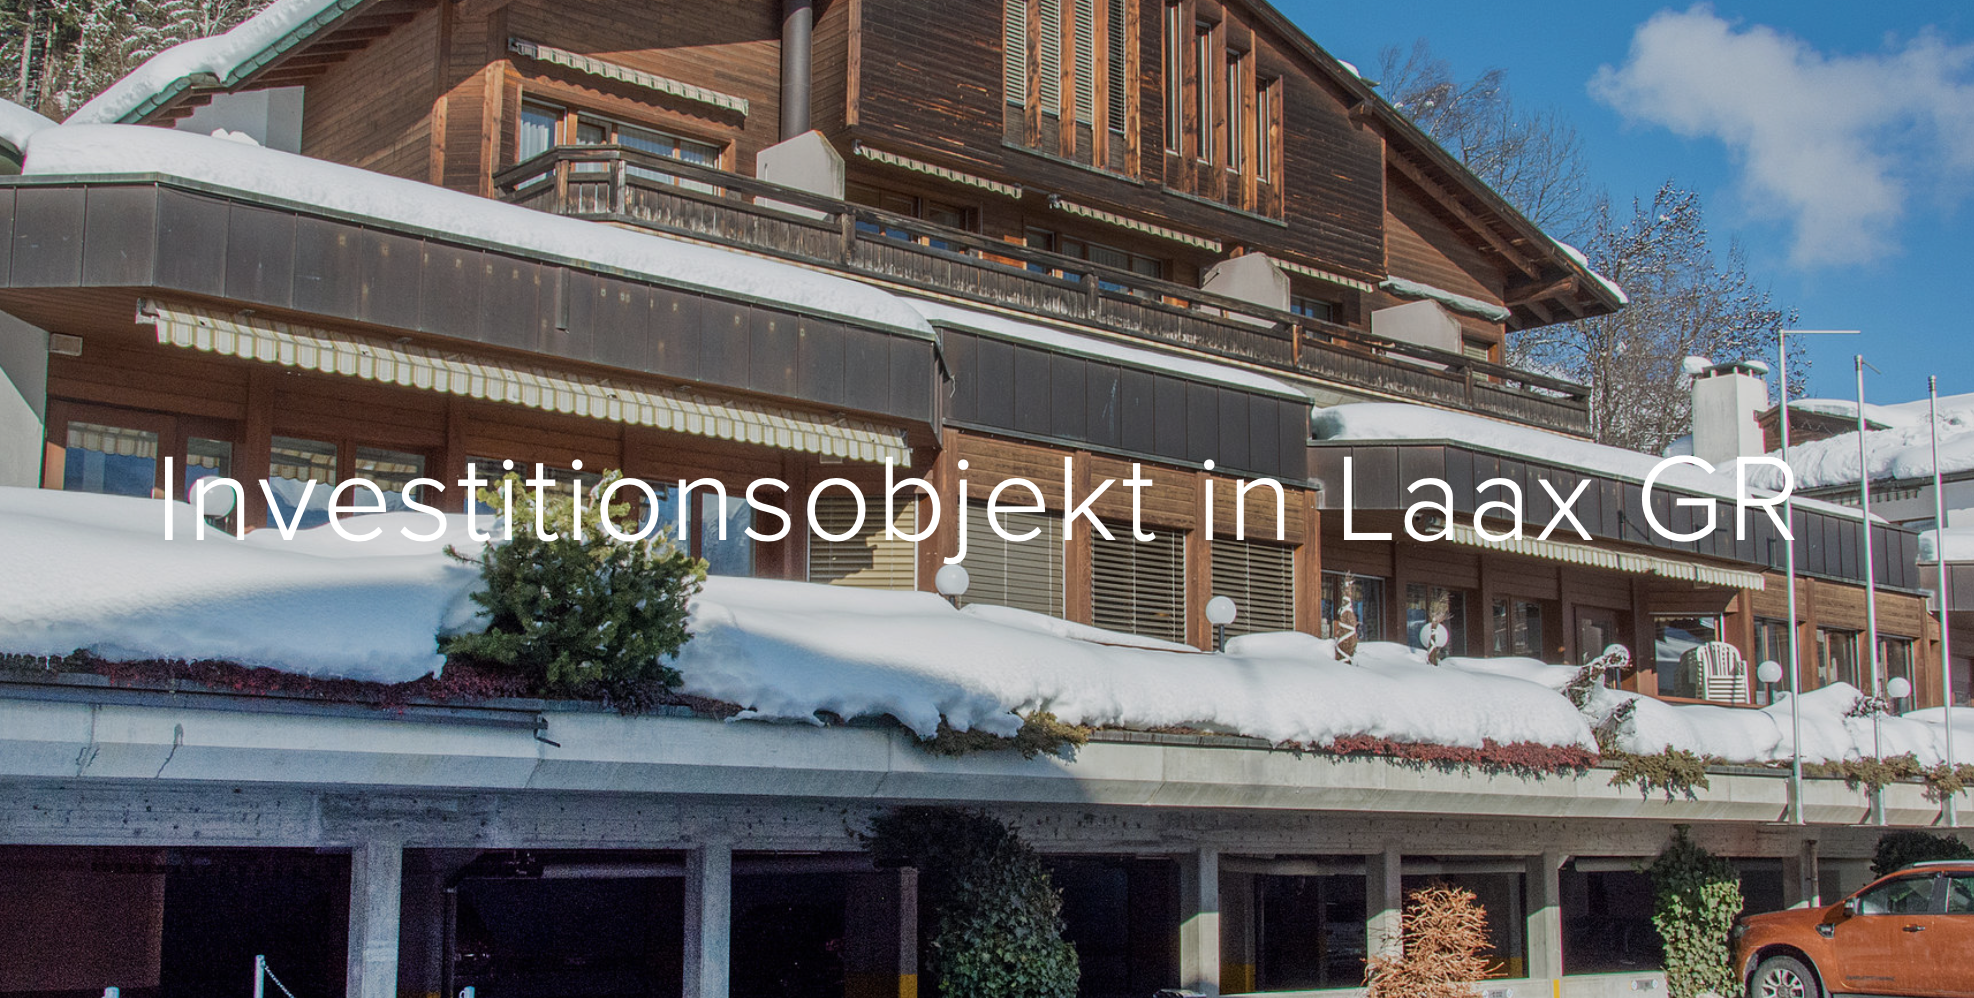 Investitionsobjekt in Laax GR